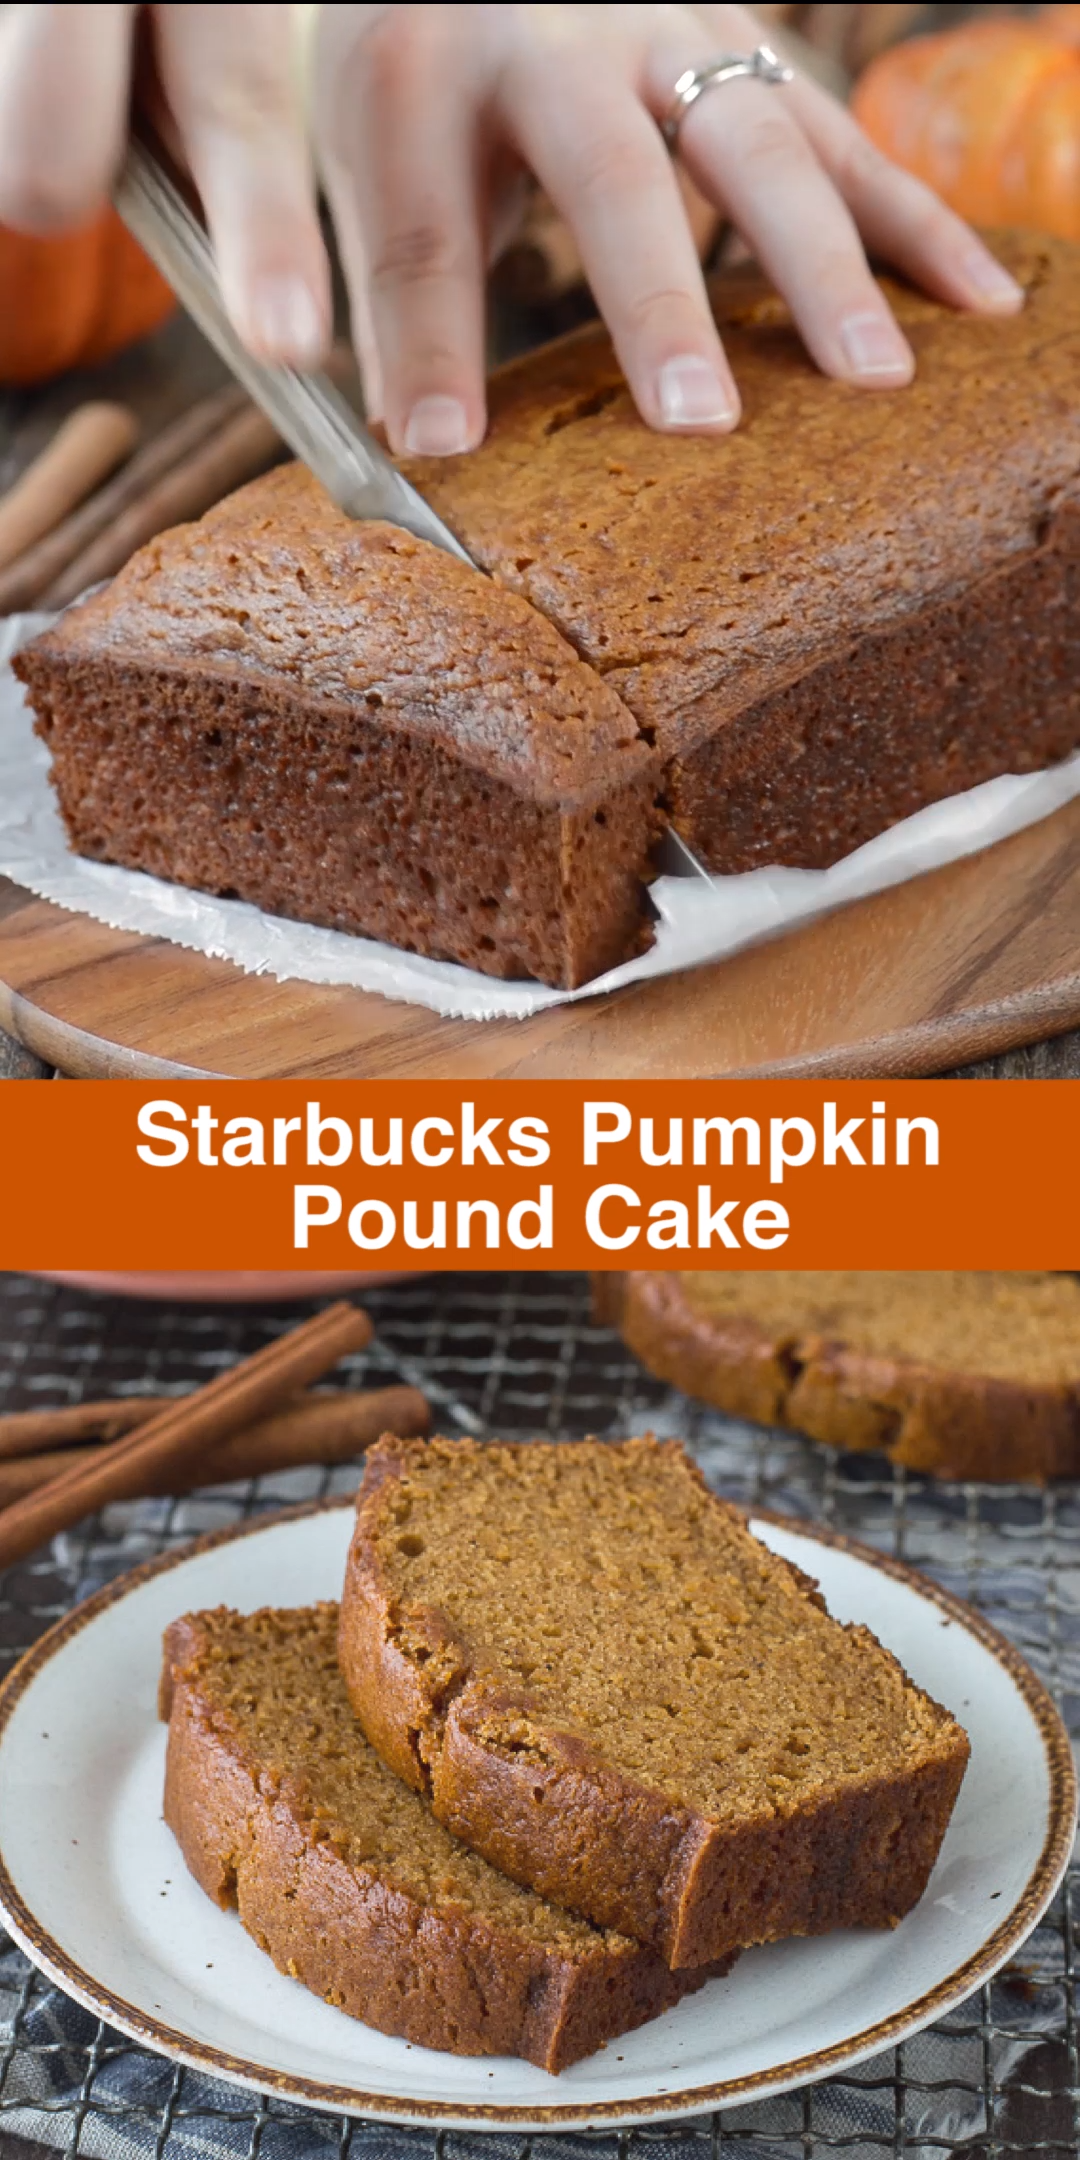 This recipe tastes just like Starbucks Pumpkin Pound Cake - takes 15 minutes to prep, you will want to share this with friends and family! Can be made in muffin, mini muffin or mini loaf pans. #pumpkinbread #starbuckspumpkinbread #pumpkinloaf #pumpkinpoundcake